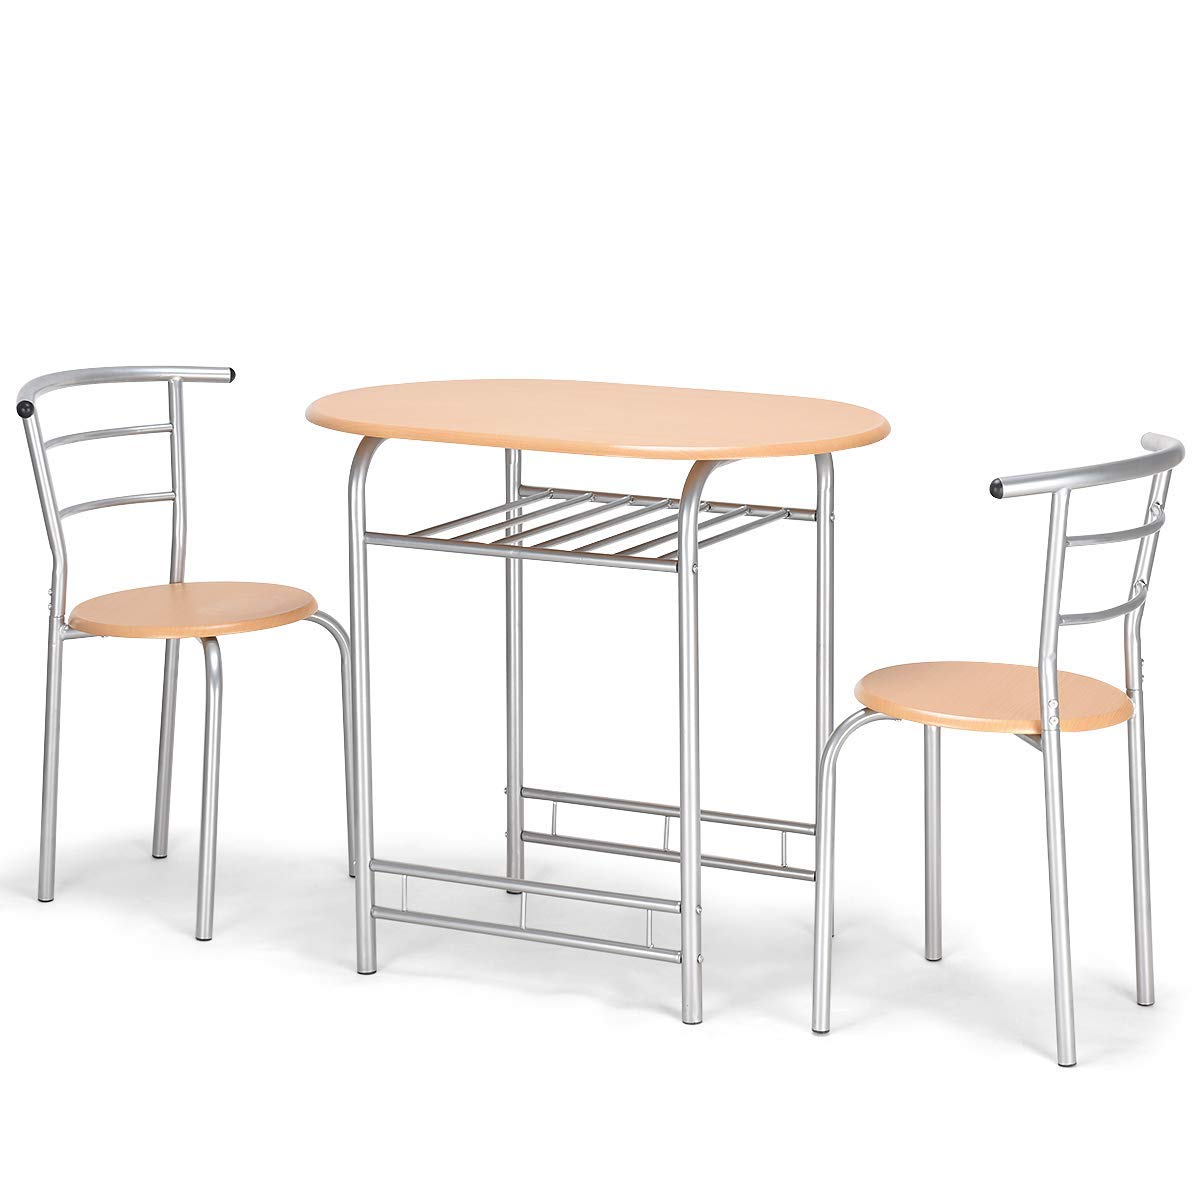 Giantex 3 PCS Bistro Dining Set Table and 2 Chairs Kitchen Furniture Pub Home Restaurant Table Chair Sets (Natural)